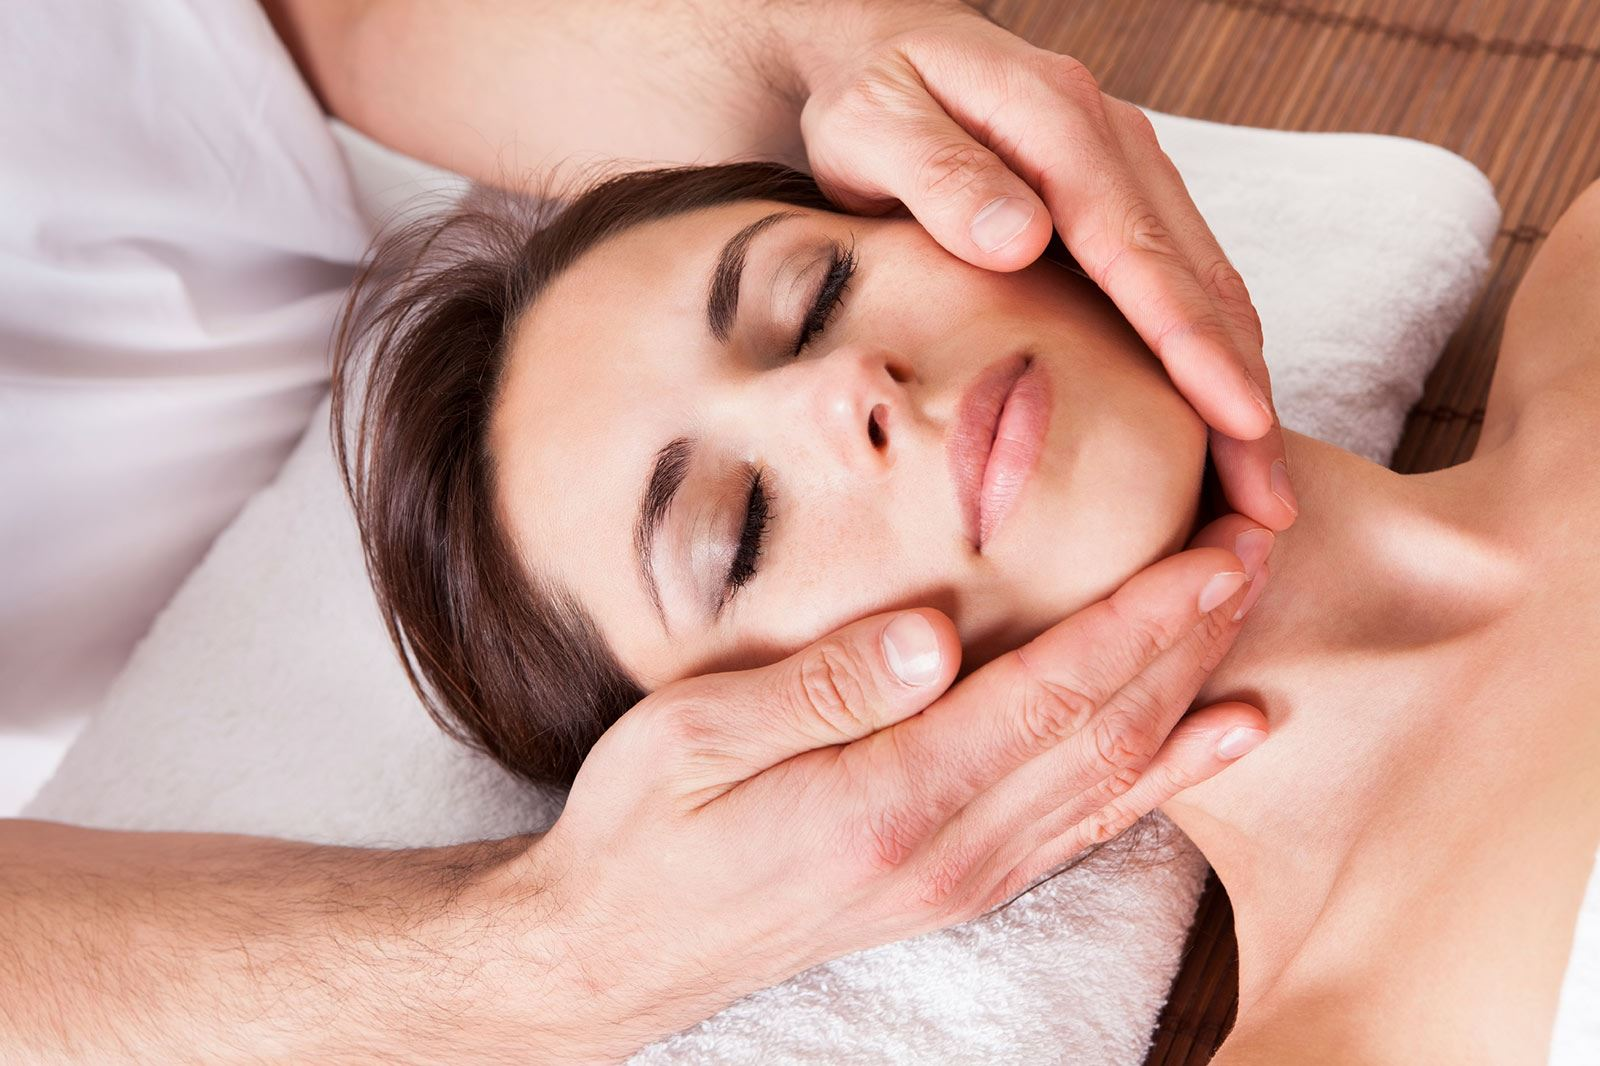 cancer and massage 2 cancer and cancer treatment cause physical and emotional distress symptom relief is a high priority in cancer care people turn to massage therapy for support companionship escape.